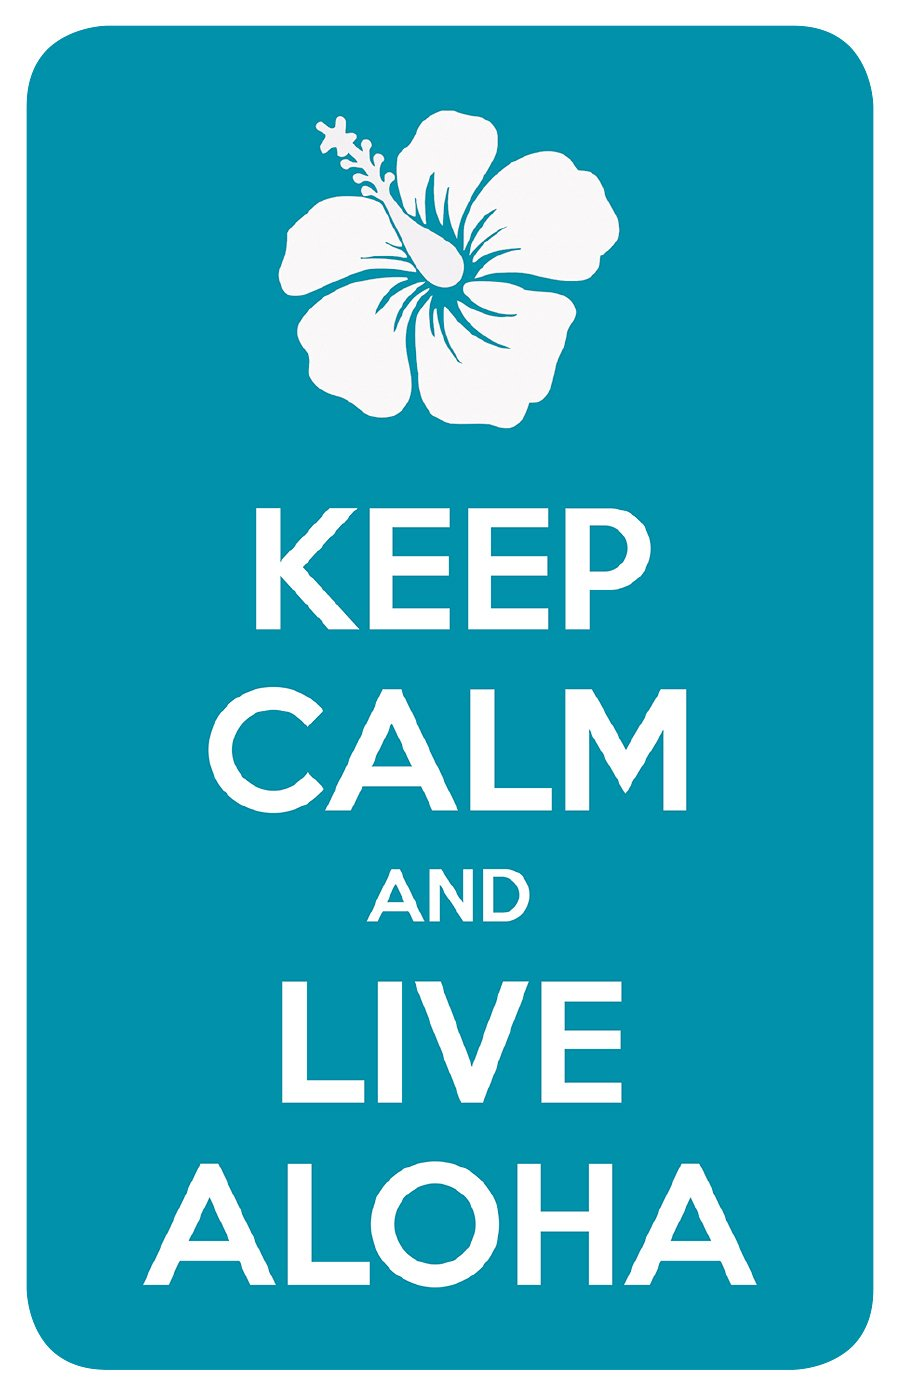 Car Window Bumper Sticker Inc. Pacifica Island Art Keep Calm and Live Aloha Hawaiian Art Decal